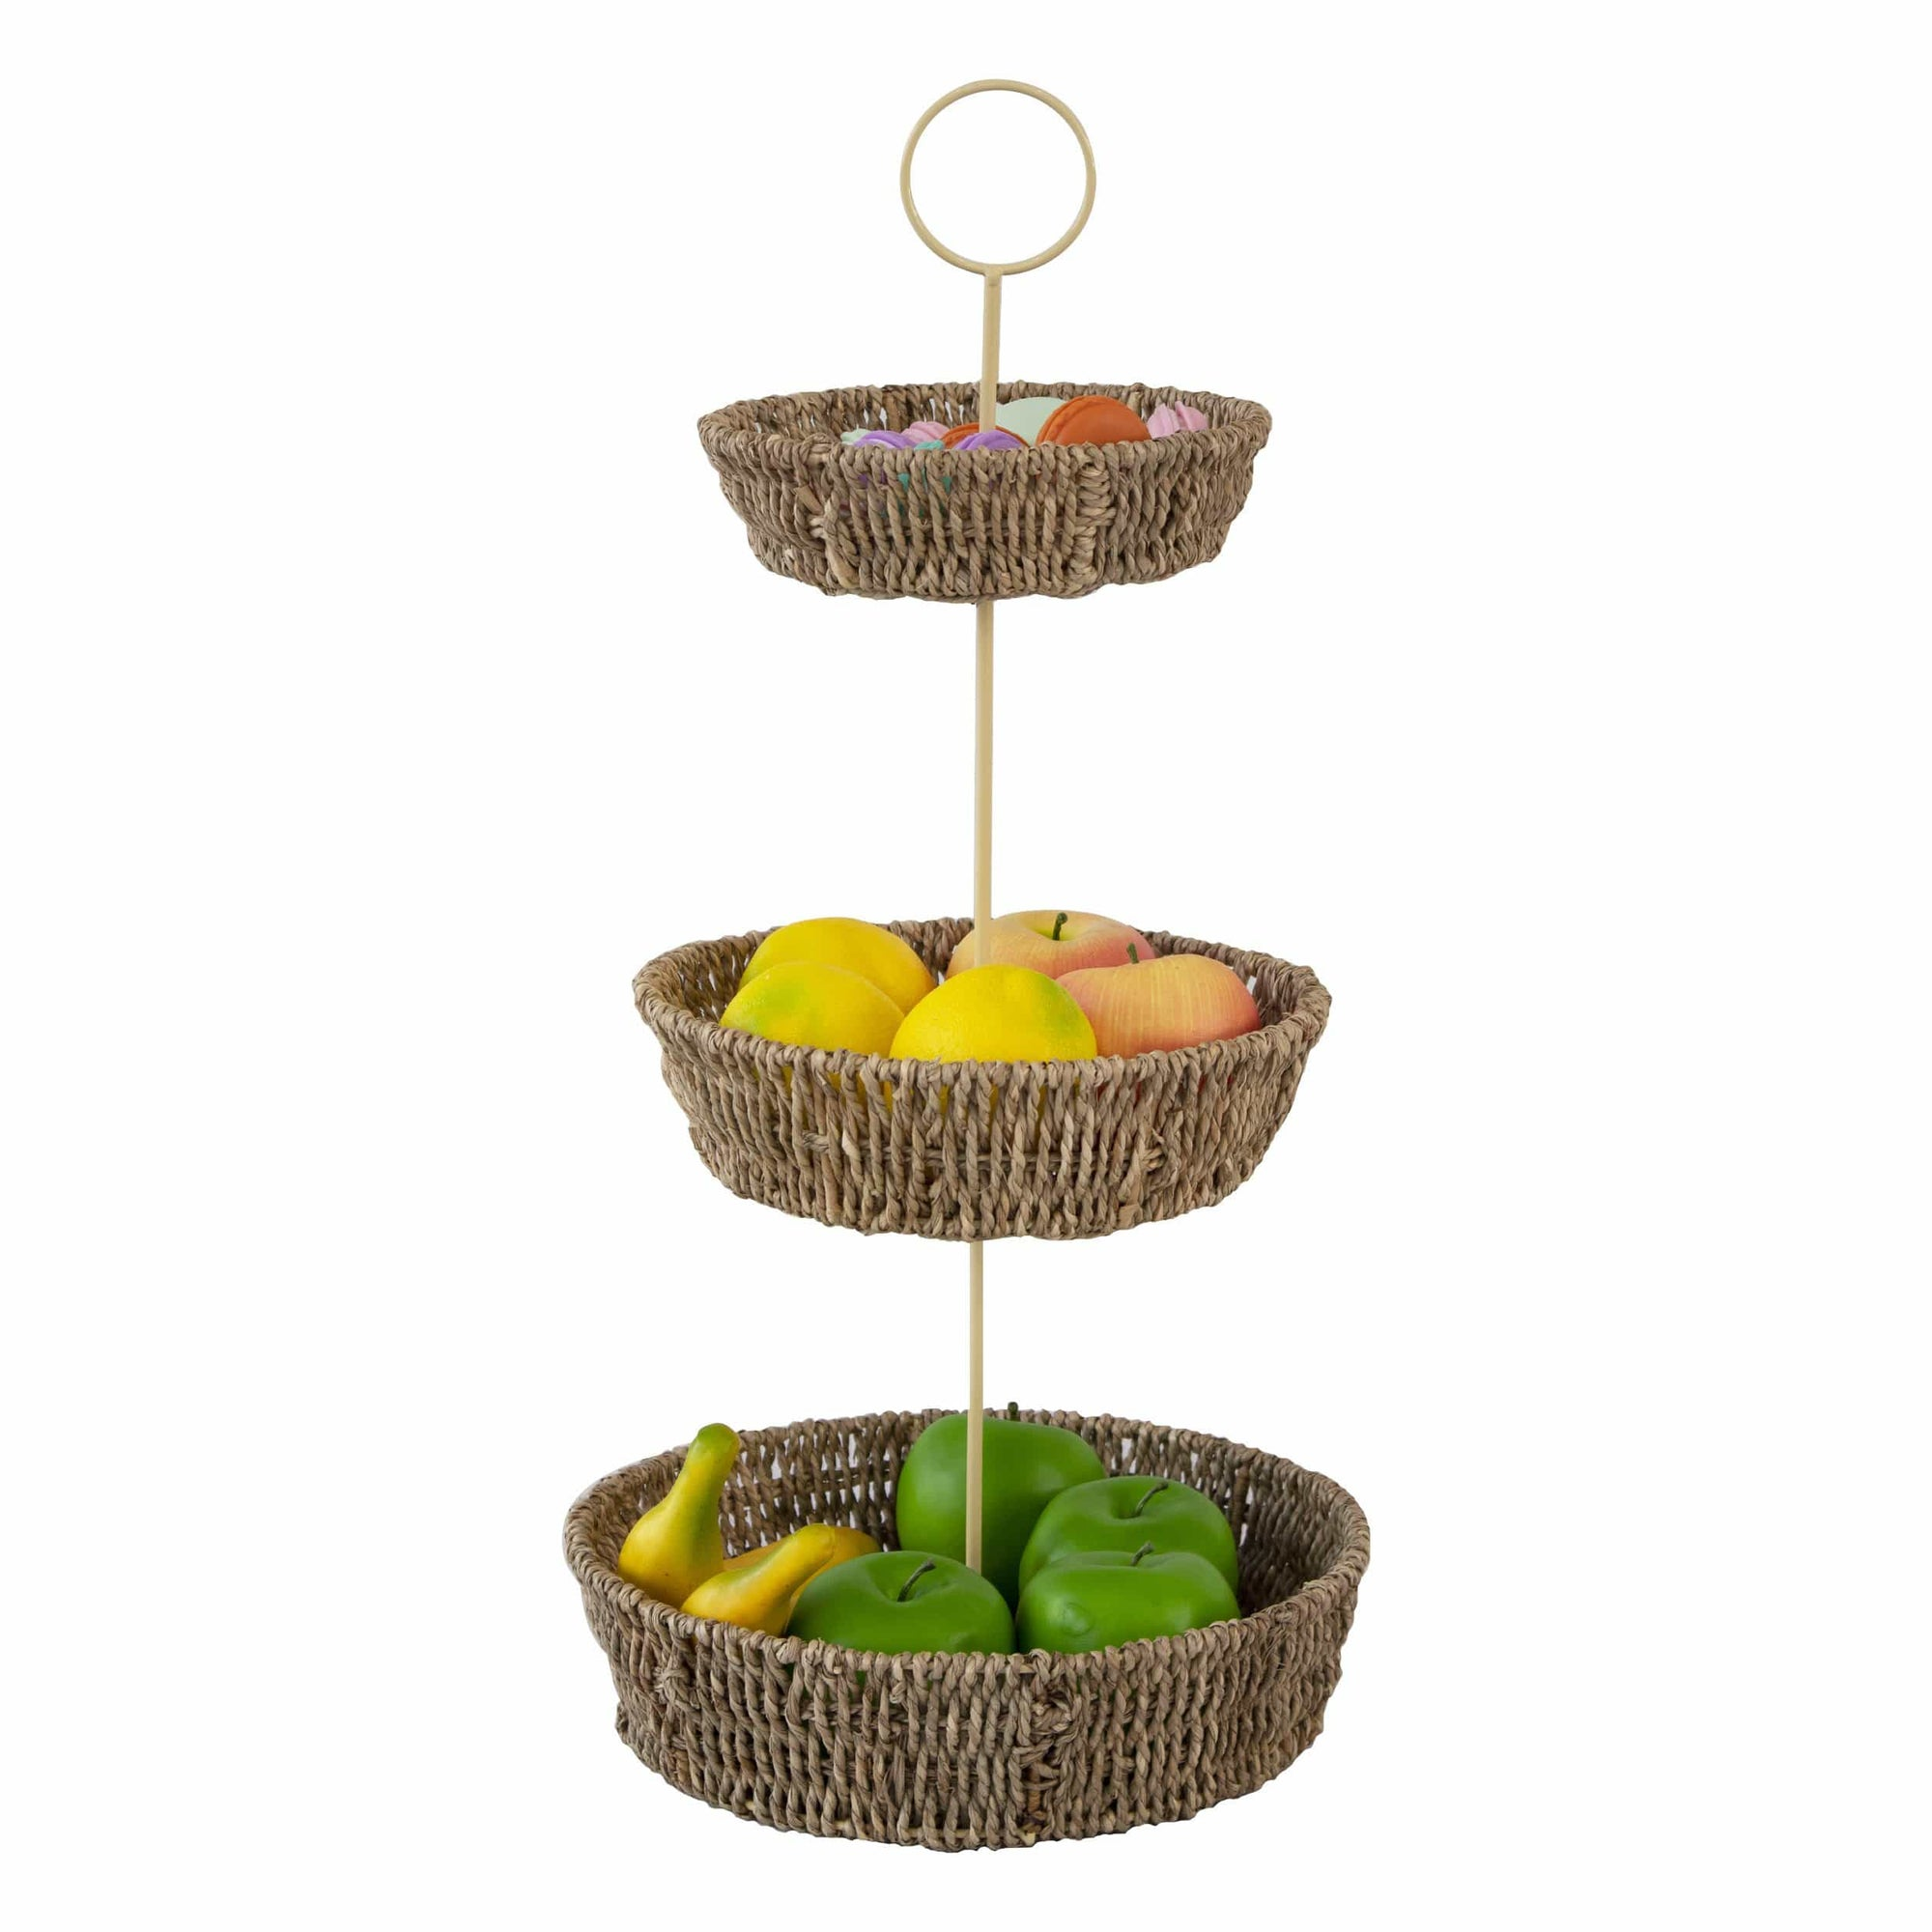 Made Terra 3 Tier Fruit Basket and Produce Hanging Holder | Rustic Farmhouse Decorative Fruit Basket for Storing and Organizing Food